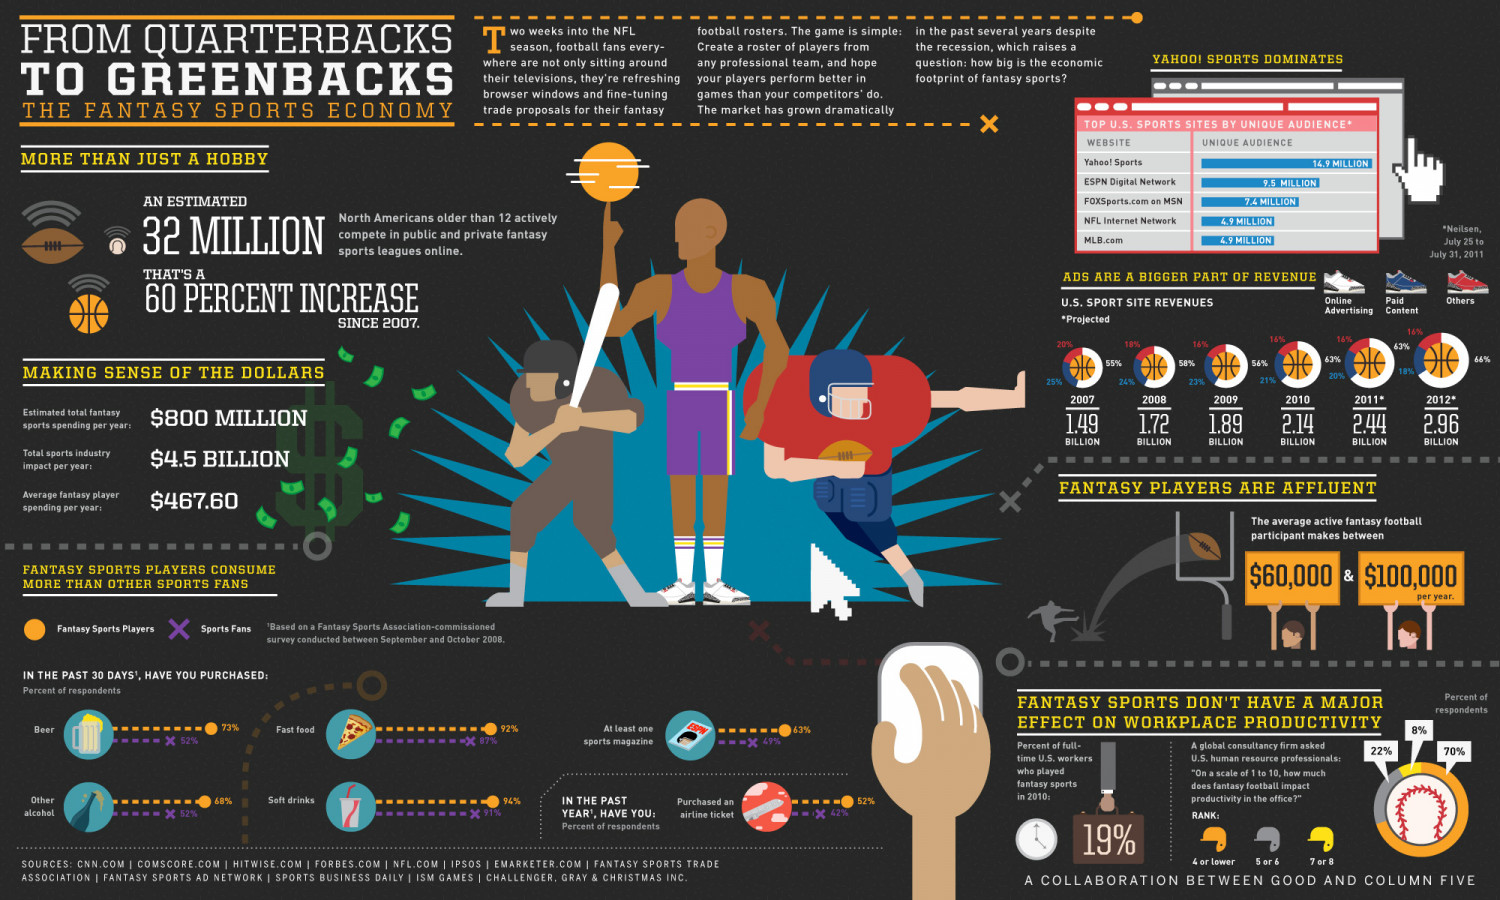 The Fantasy Sports Economy Infographic